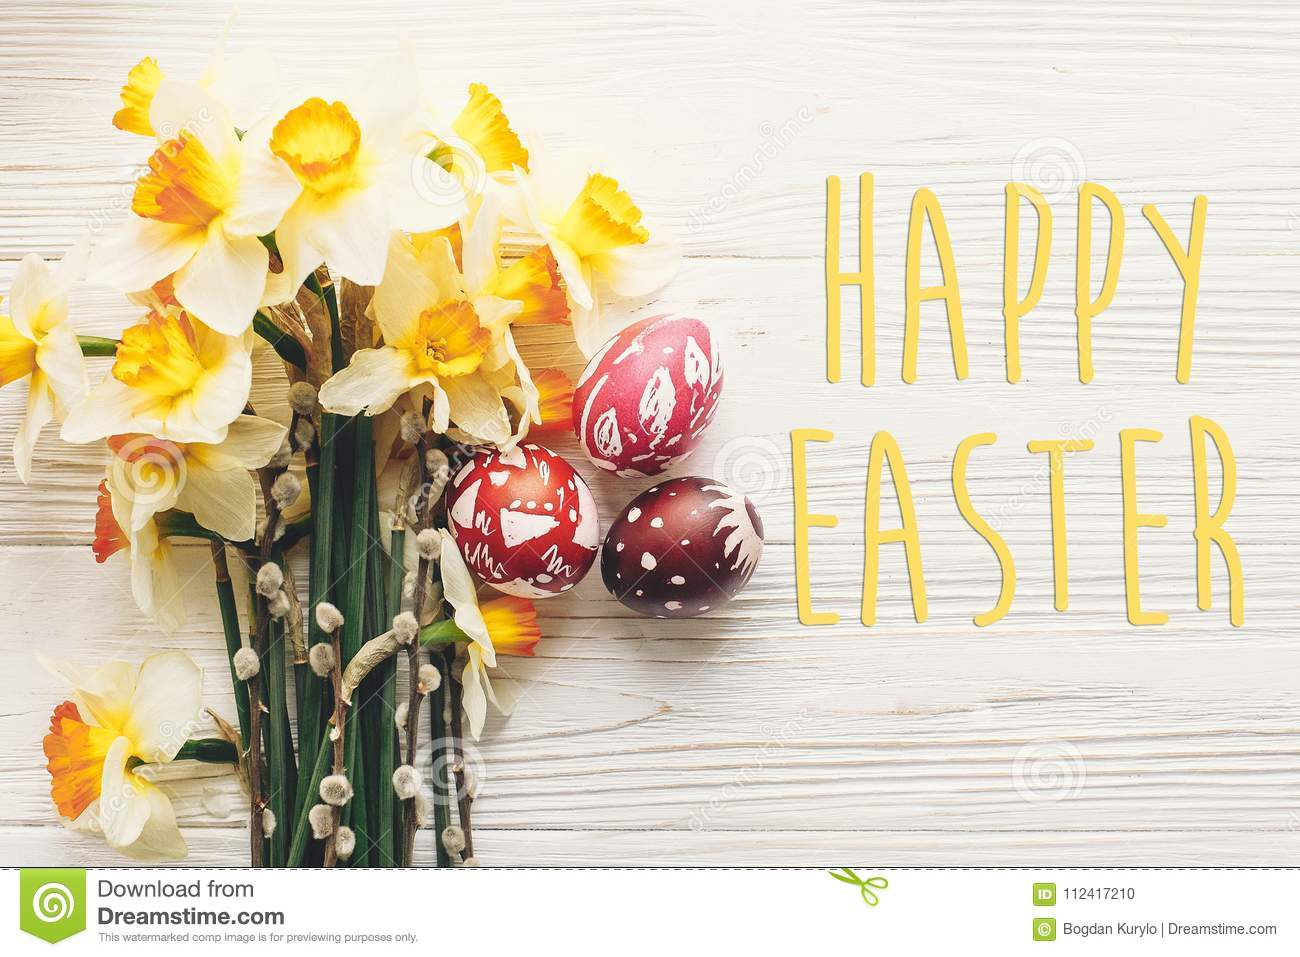 Happy Easter Text Seasons Greetings Card Stylish Painted East